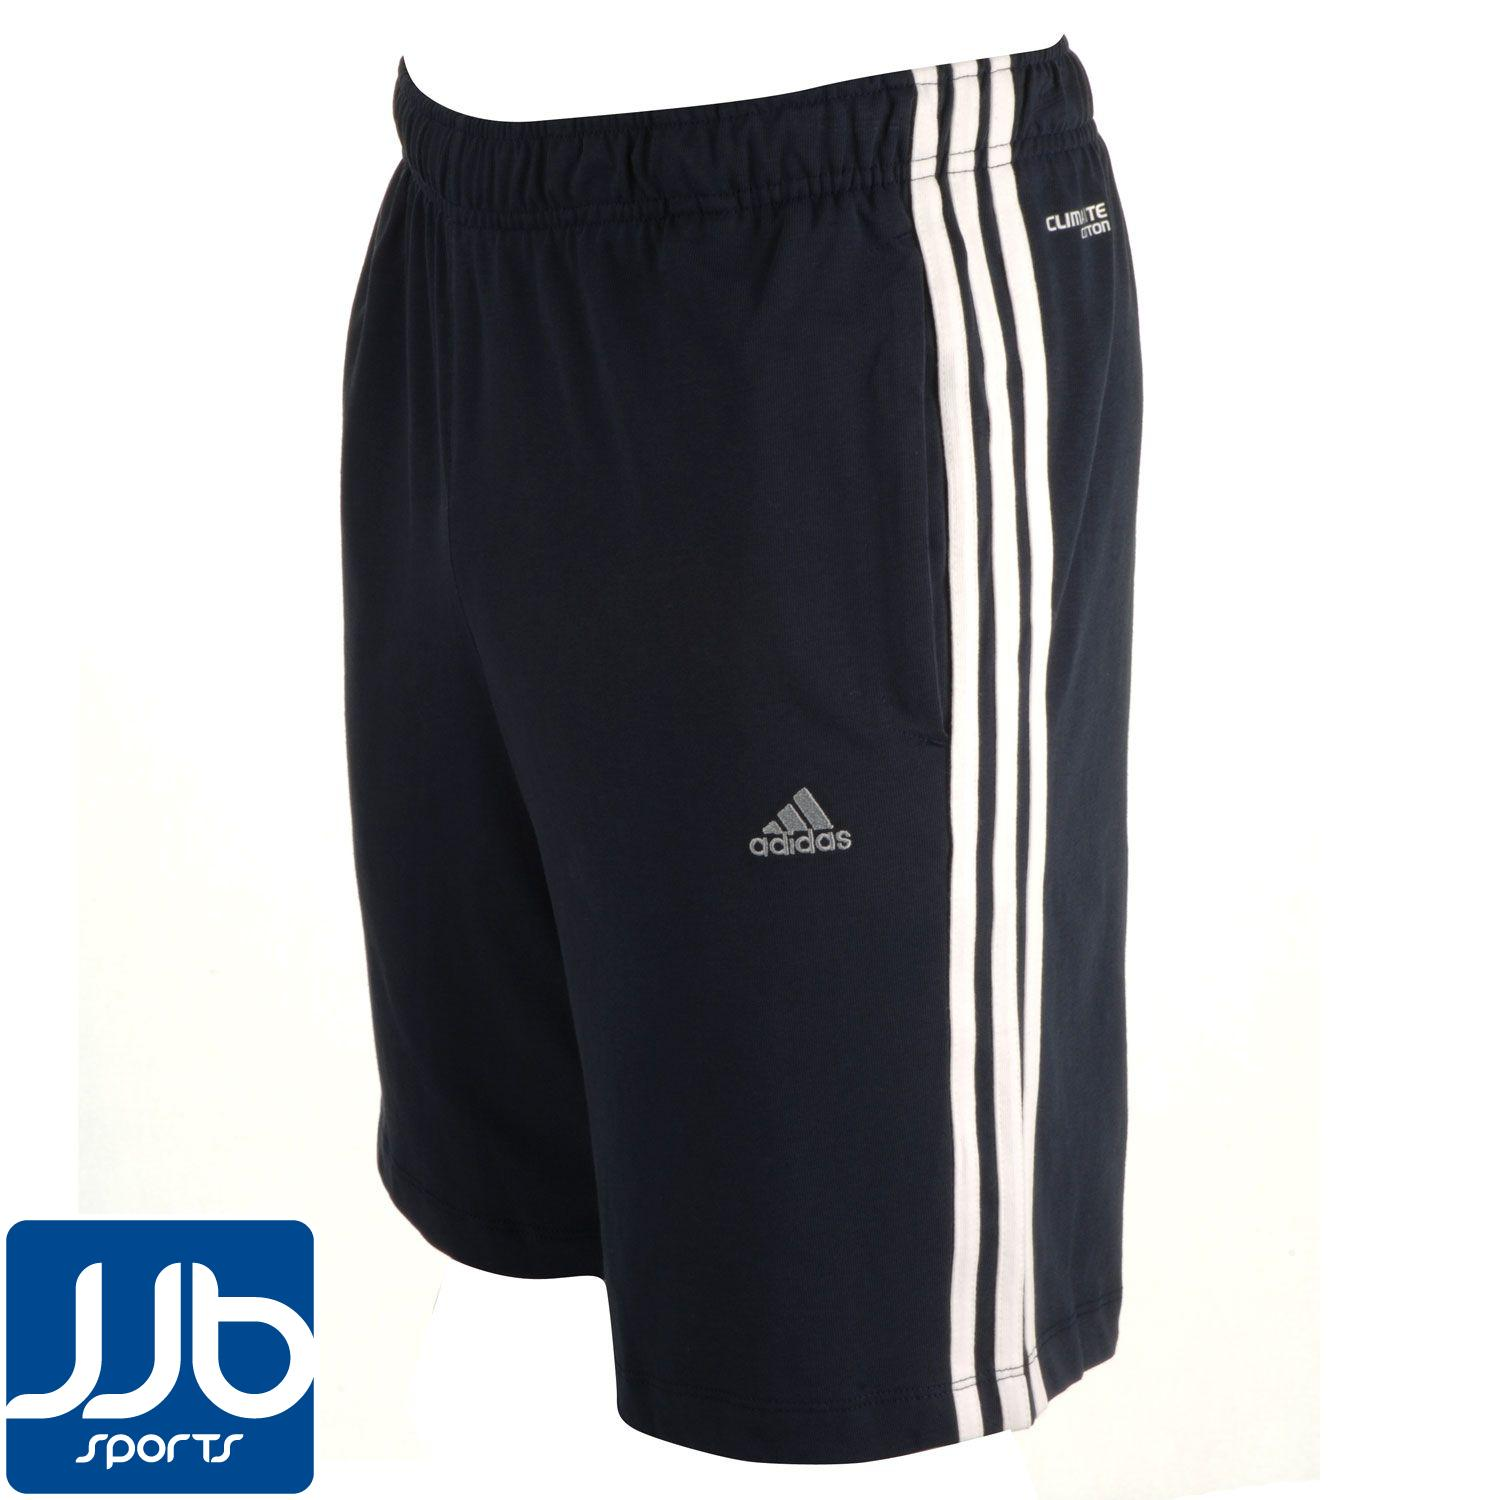 adidas 3 stripe climalite mens short ebay. Black Bedroom Furniture Sets. Home Design Ideas